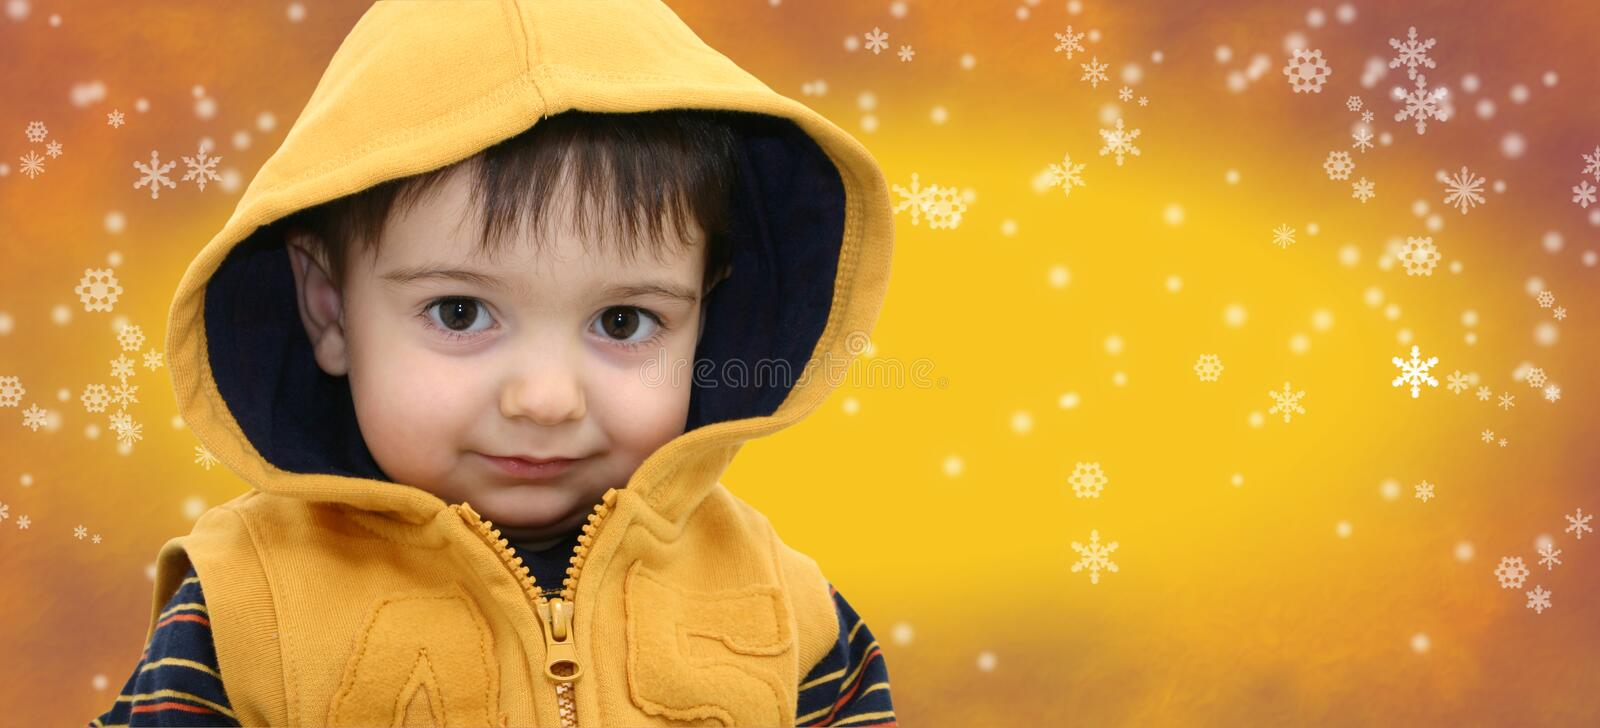 Winter Boy Child on Yellow Snowflake Background royalty free stock images